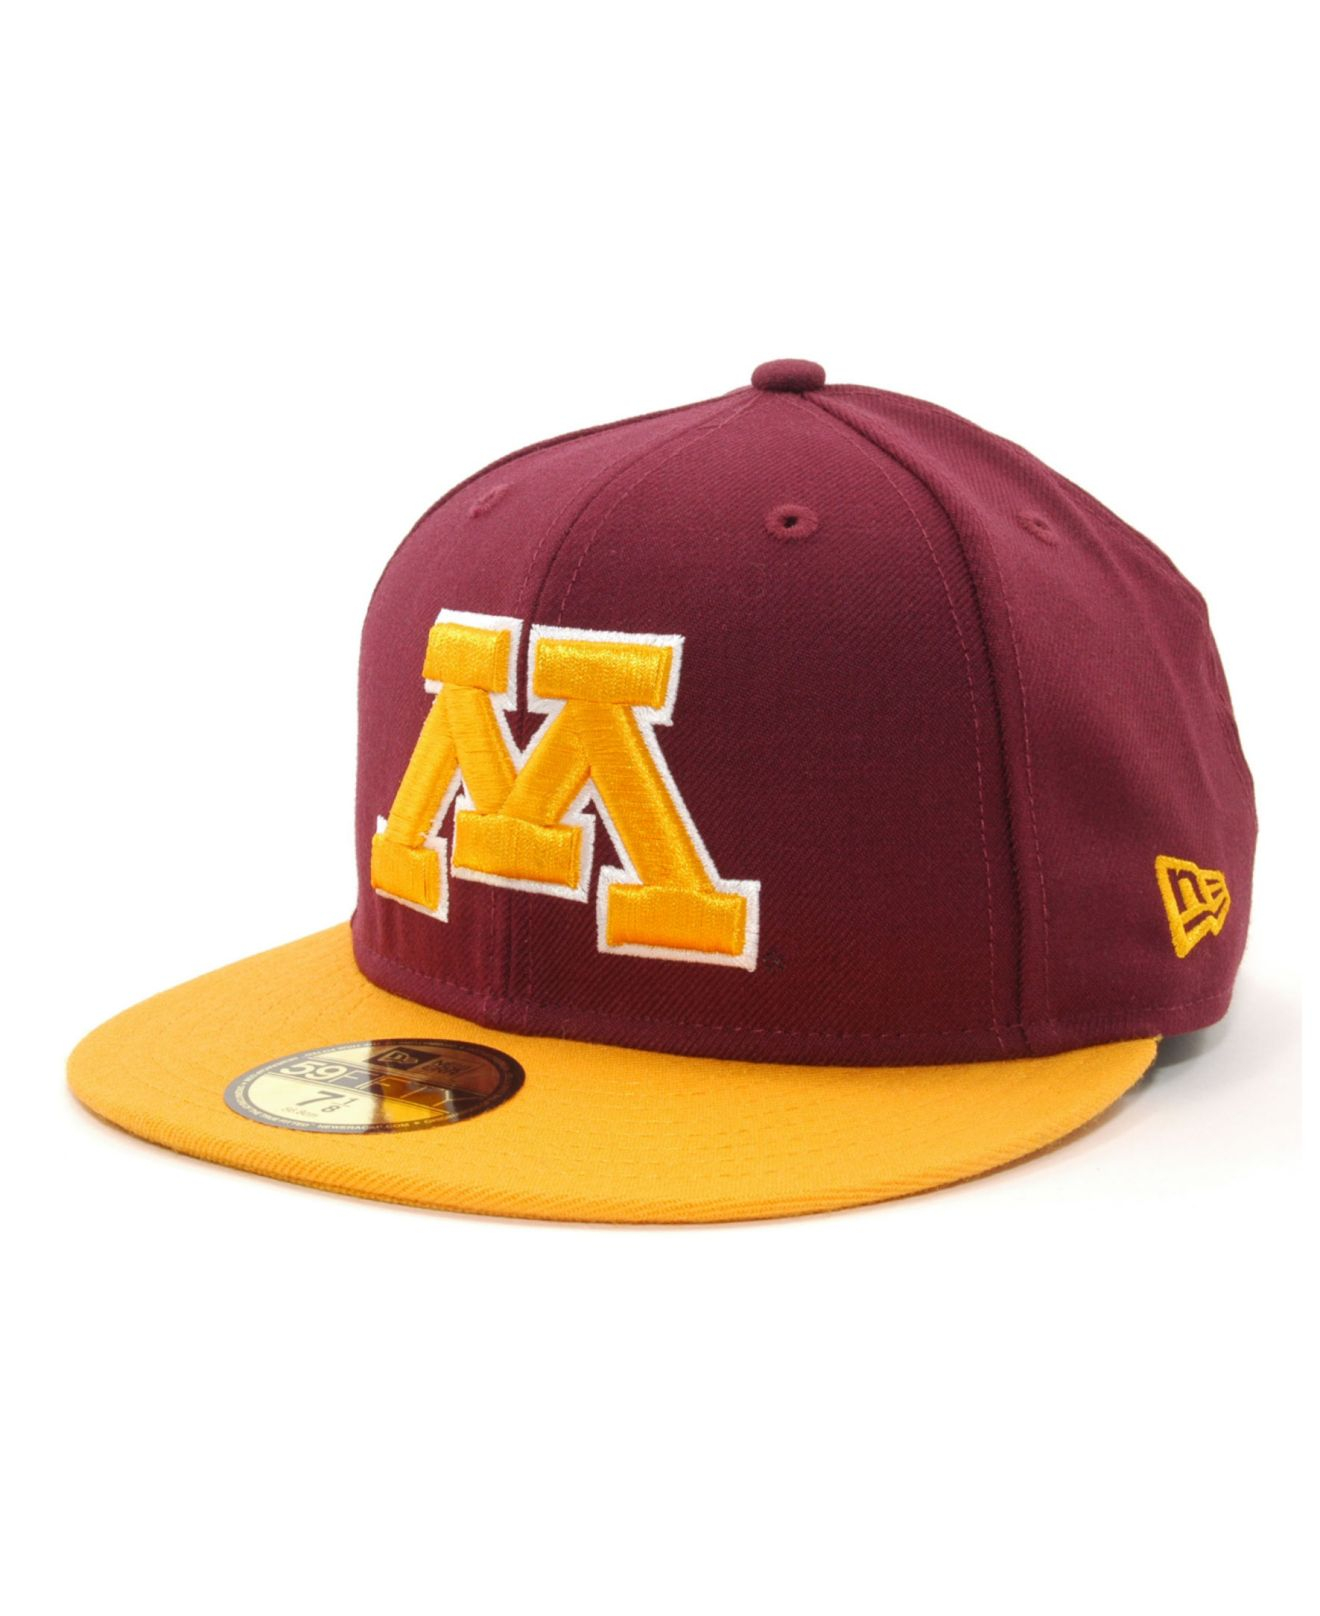 online store a4f0f 0f5d9 ... low cost lyst ktz minnesota golden gophers 2 tone 59fifty cap in red  for men 35ed7